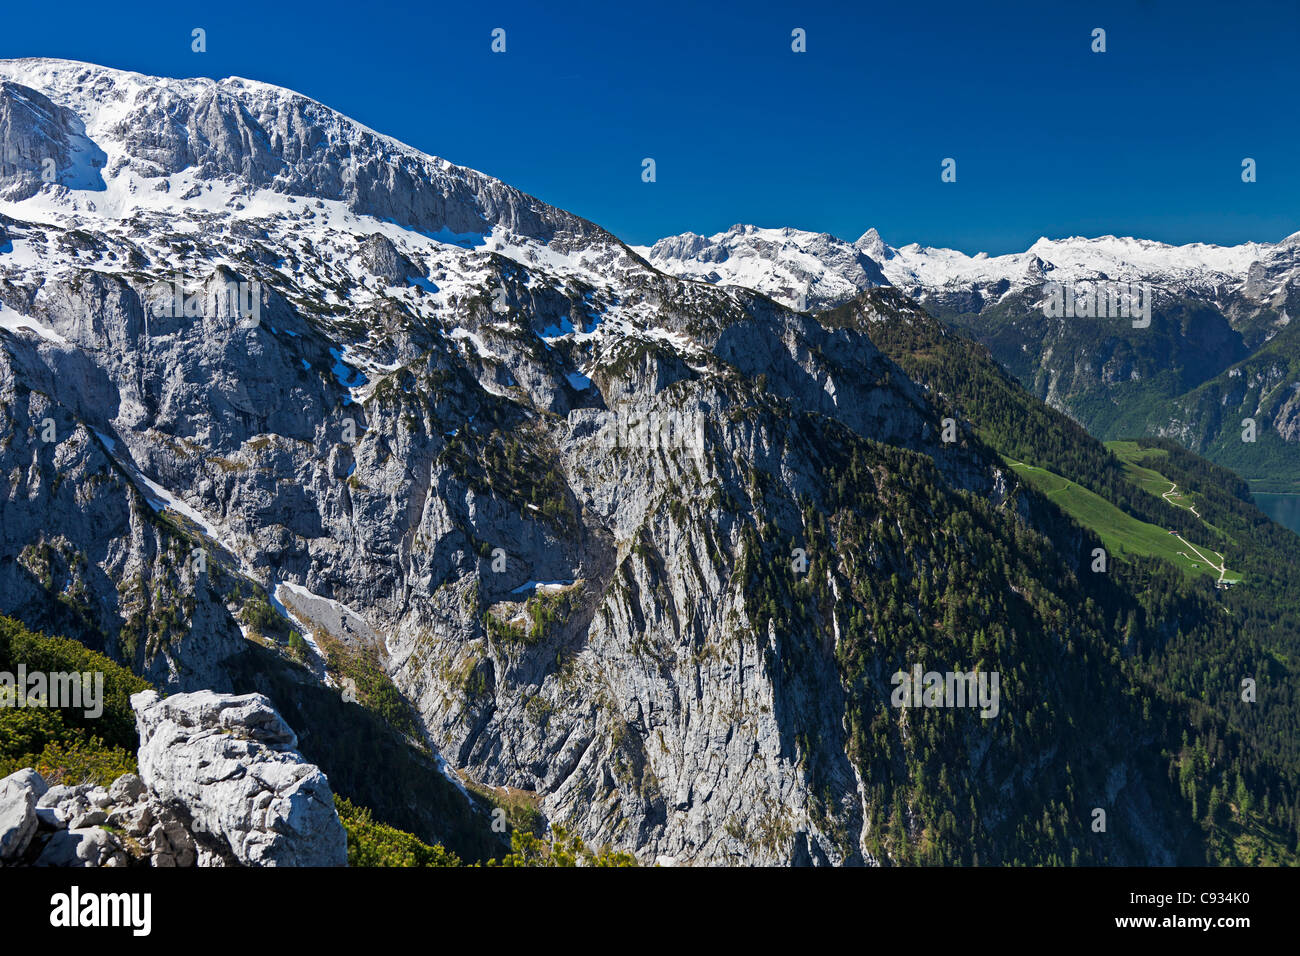 Panoramic view of the Hoher Goll Mountain,  Berchtesgaden National Park, Obersalzburg, Bayern, Germany. - Stock Image